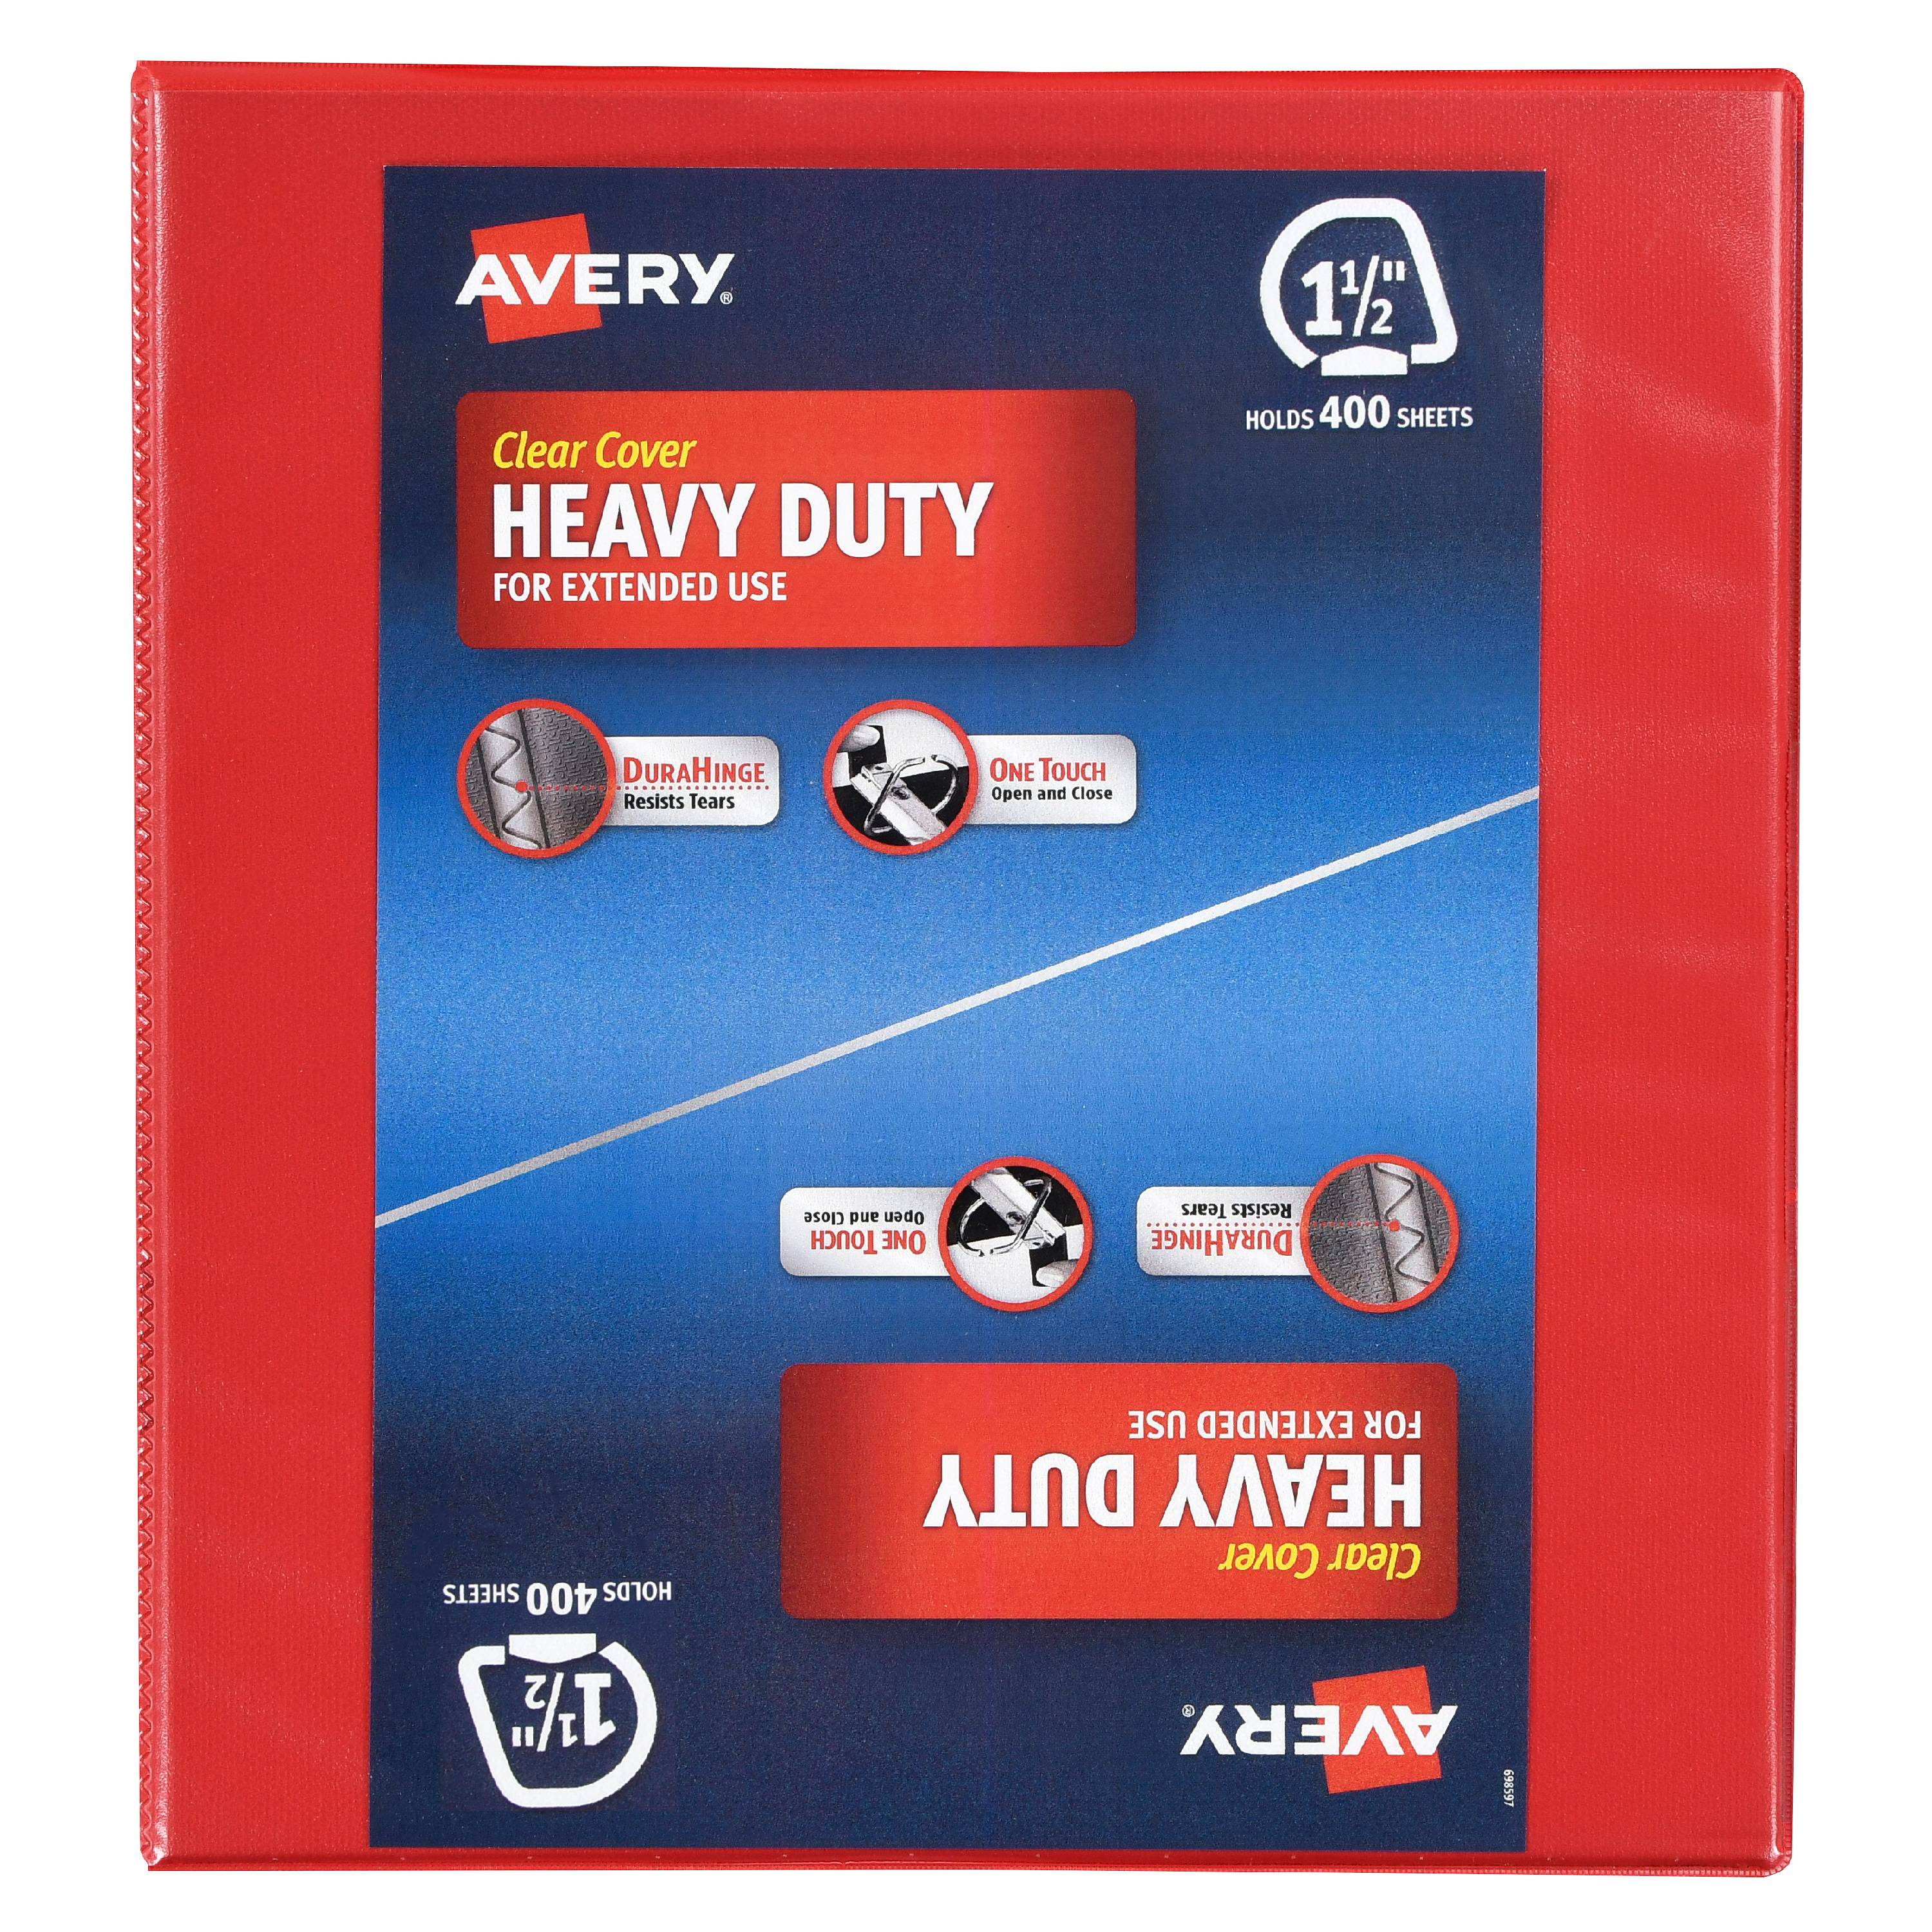 Avery Heavy Duty Clear Cover